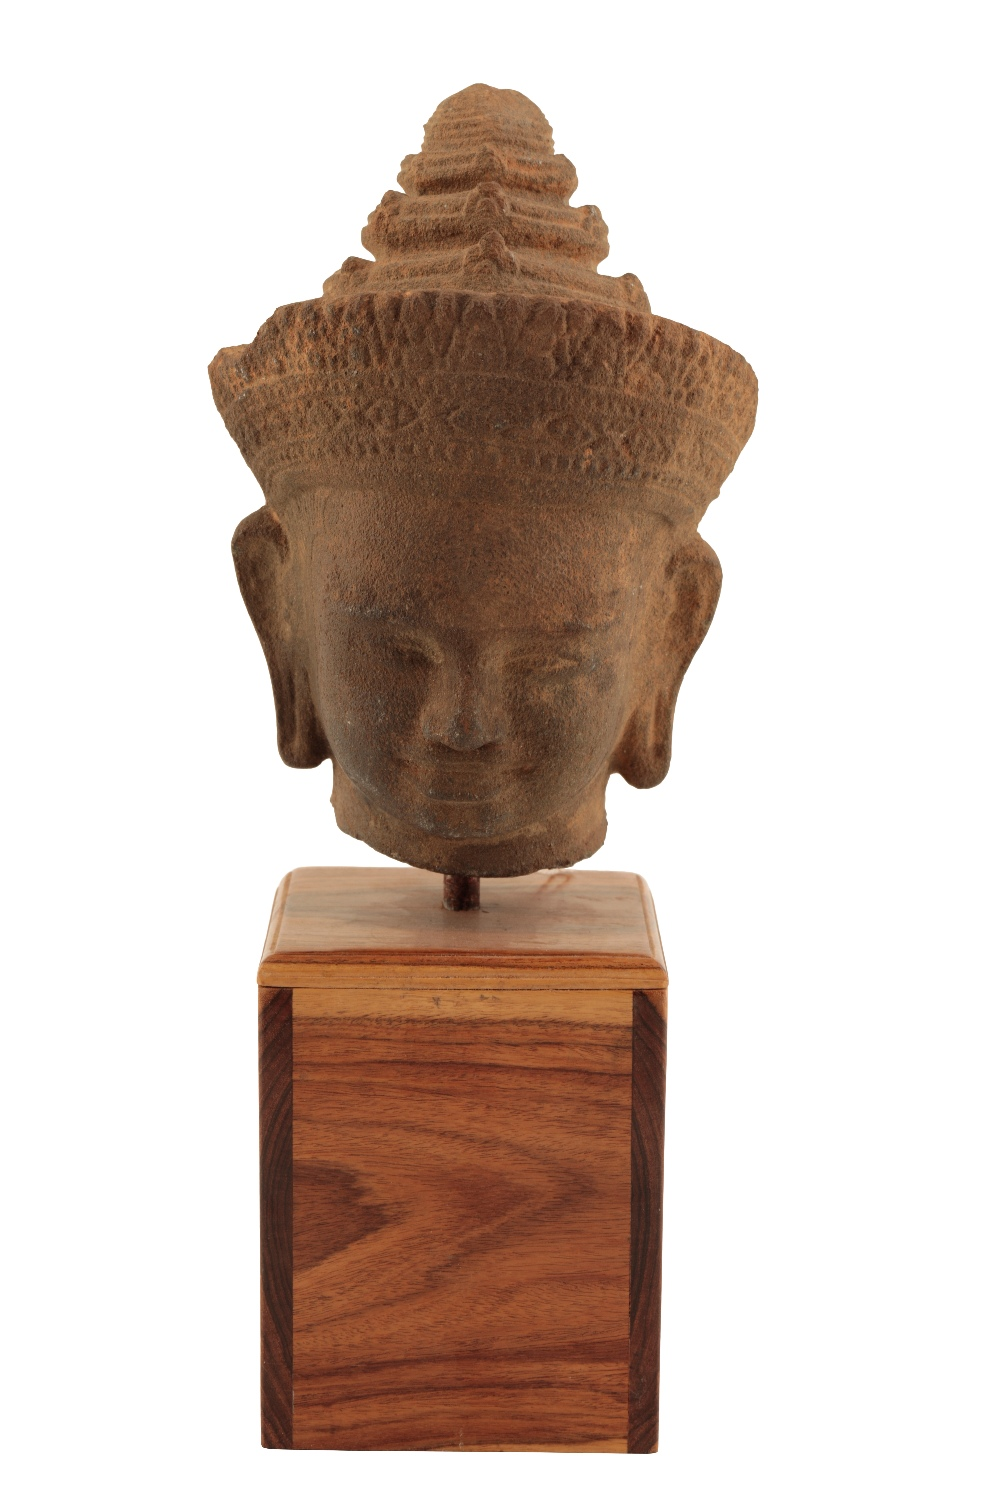 Lot 461 - CAMBODIAN SANDSTONE HEAD OF A BUDDHA, 13TH CENTURY OR LATER